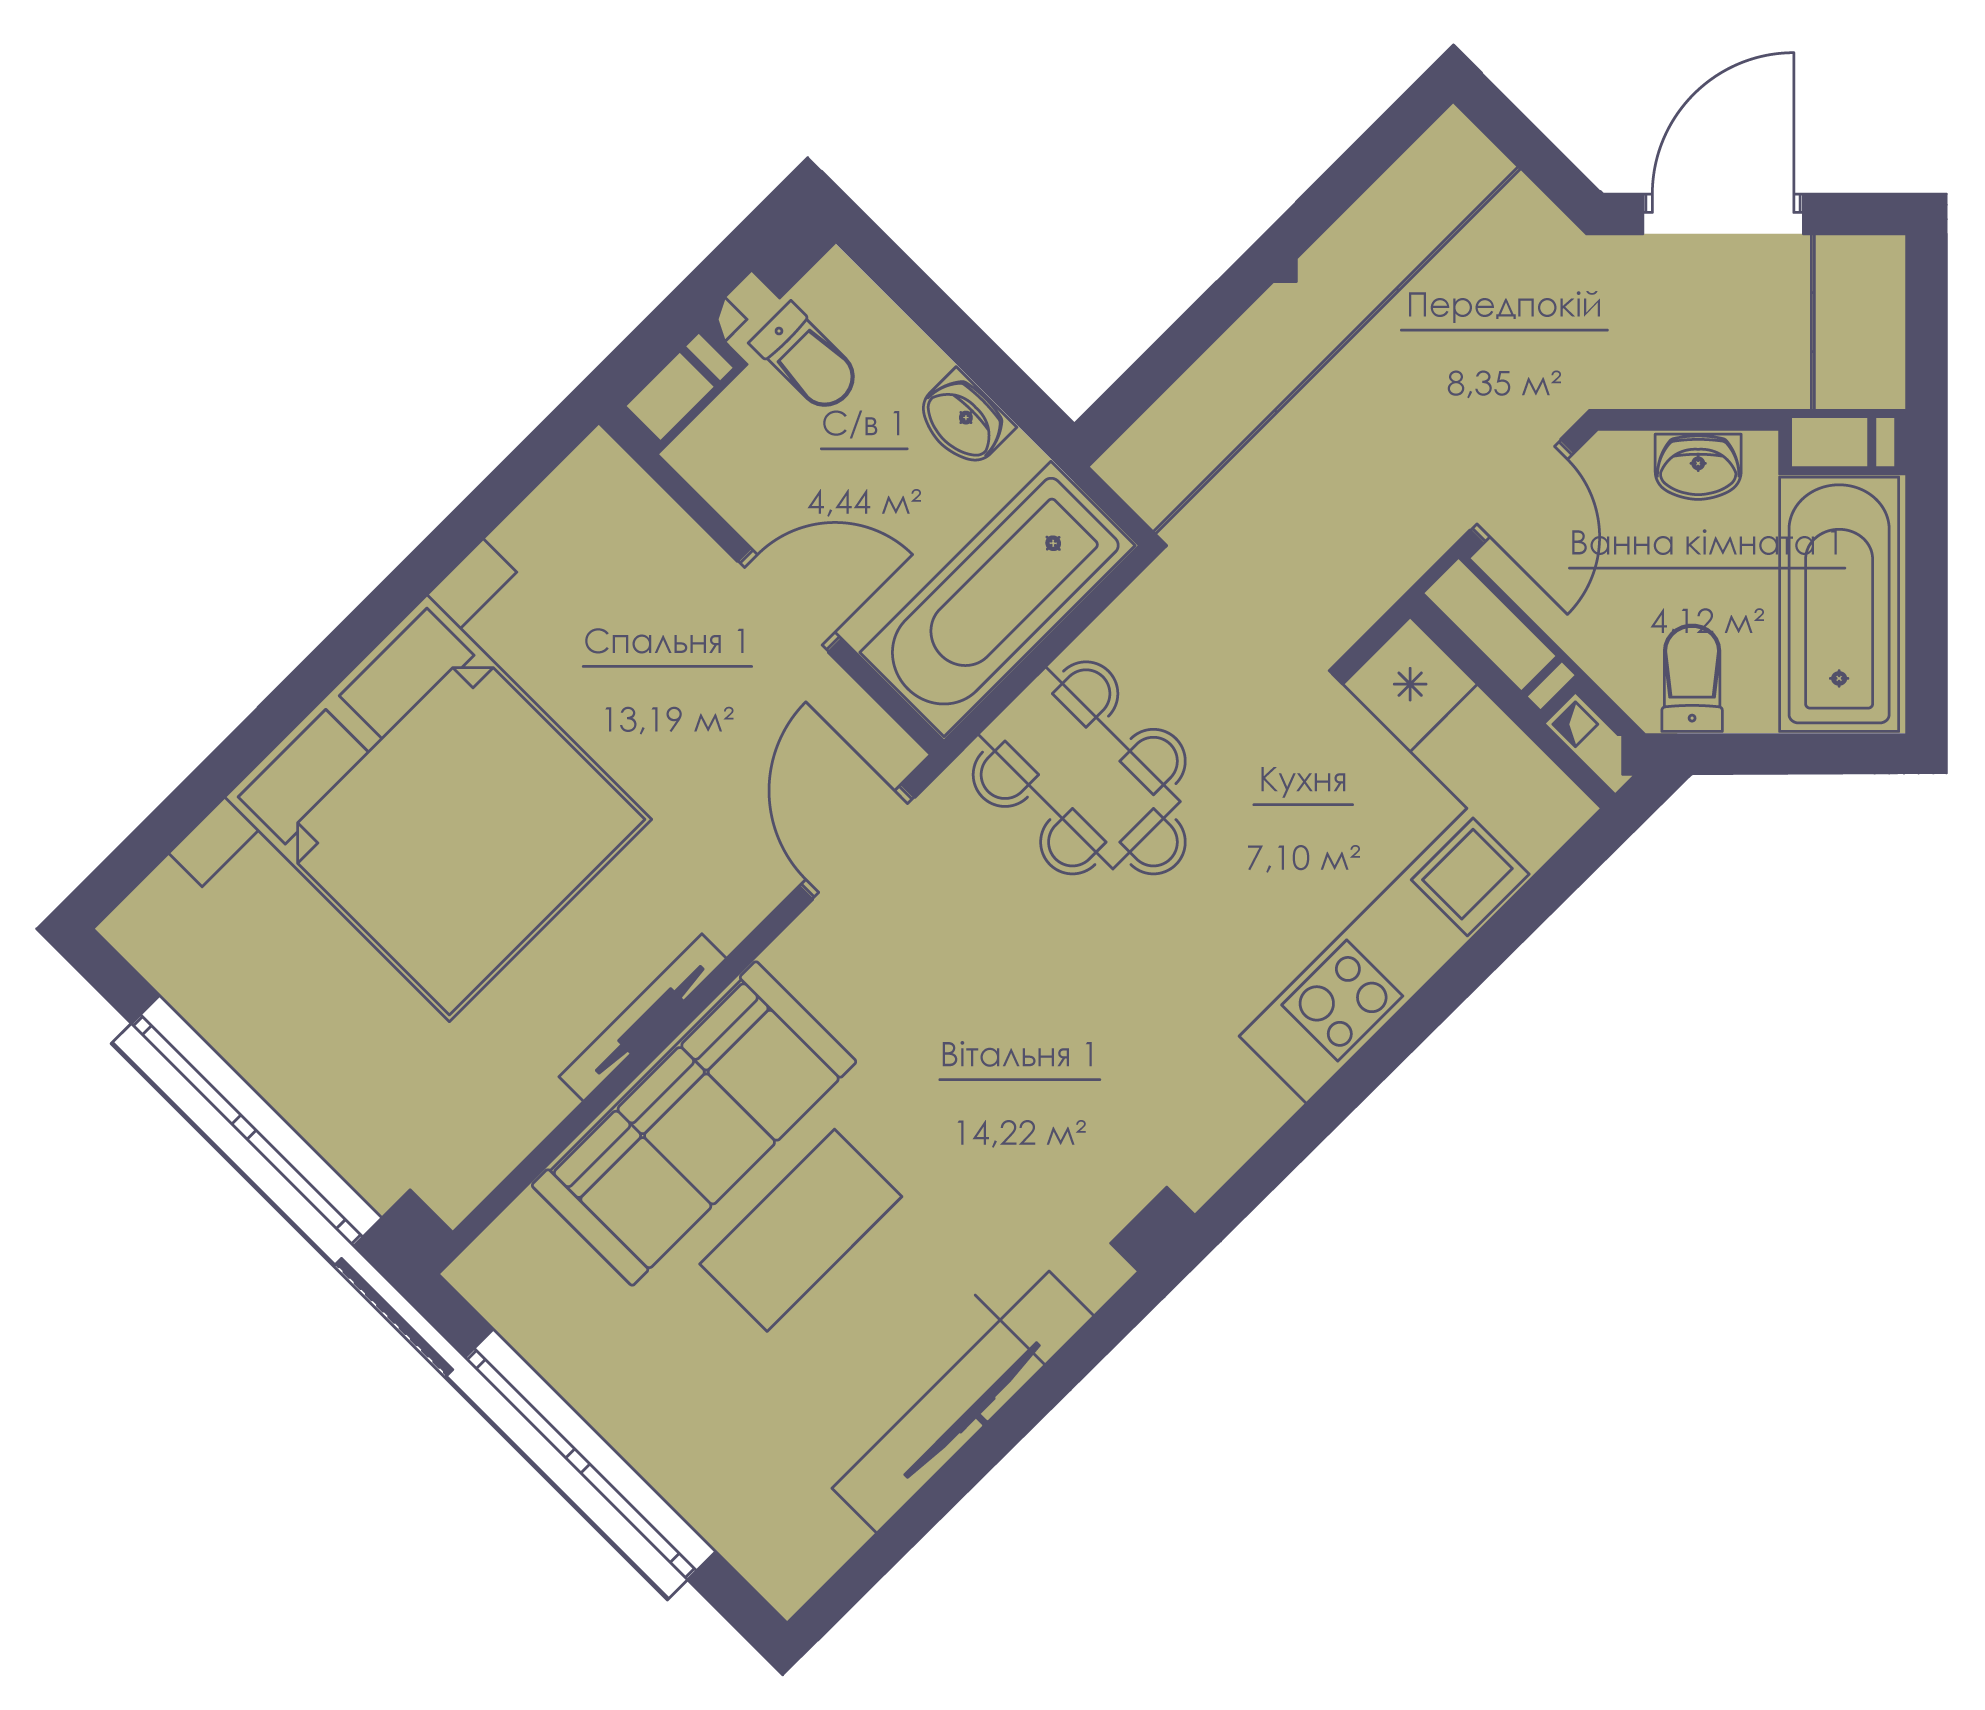 Apartment layout KV_35_2m_1_1_3-1